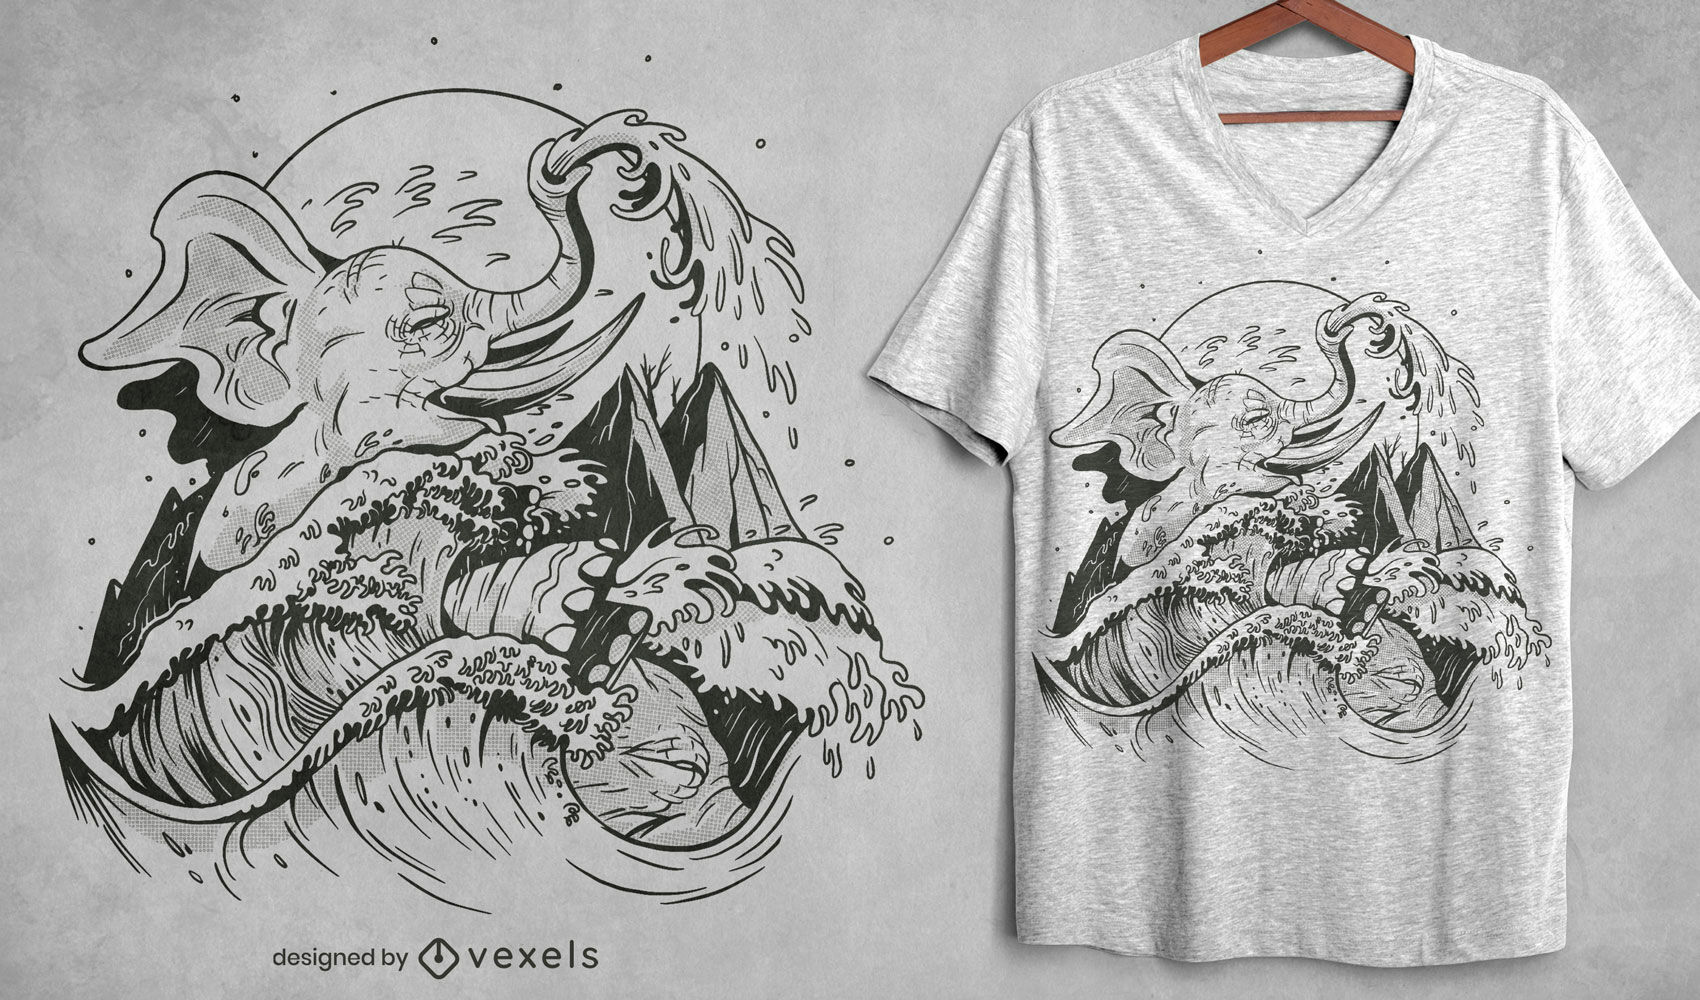 Elephant and wave hand drawn t-shirt design